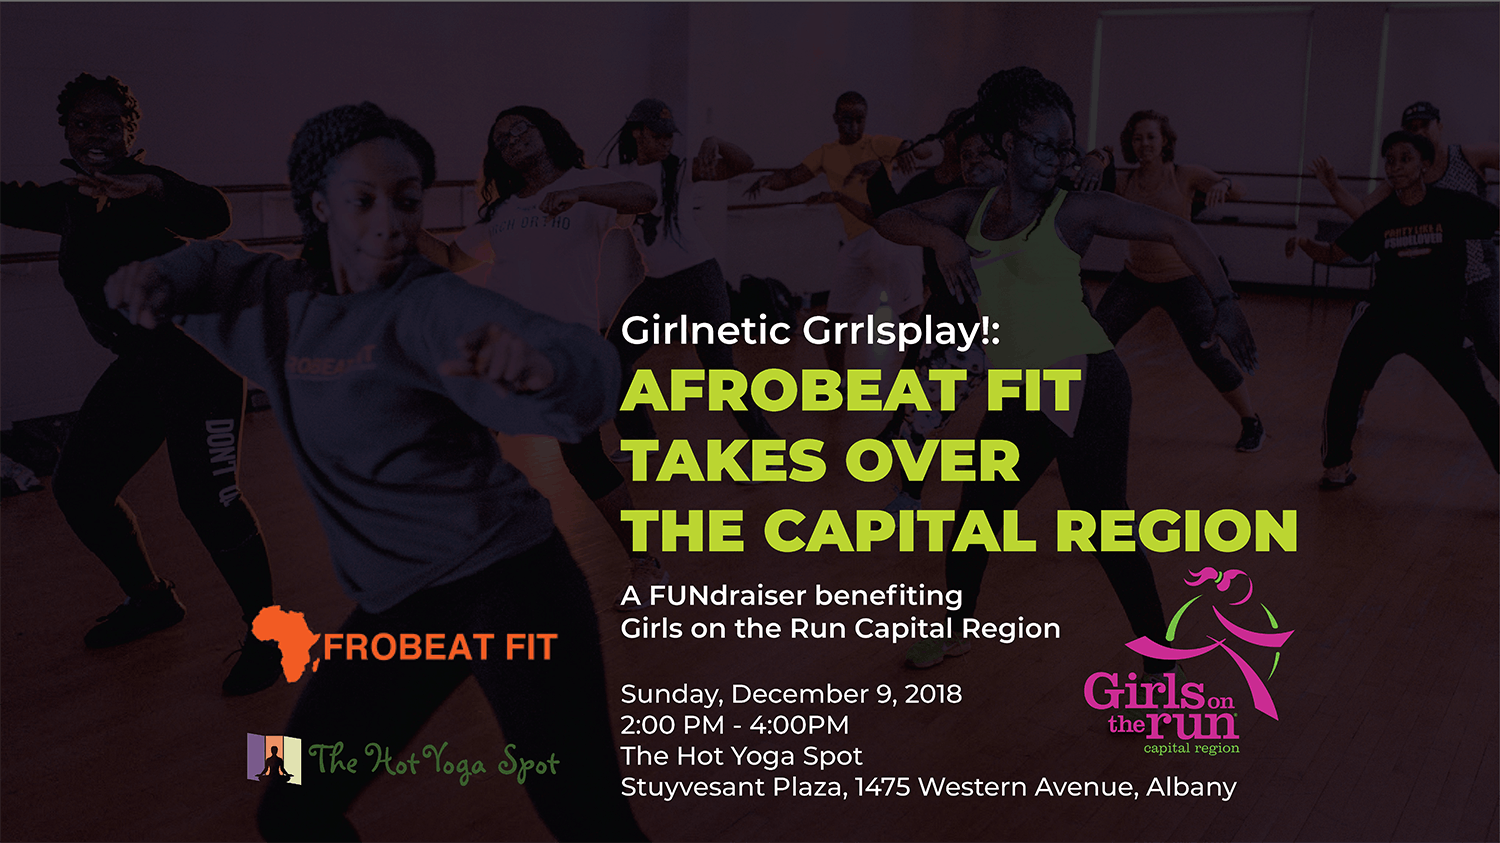 Girlnetic Grrlsplay Afrobeat Fit Takes Over the Capital Region